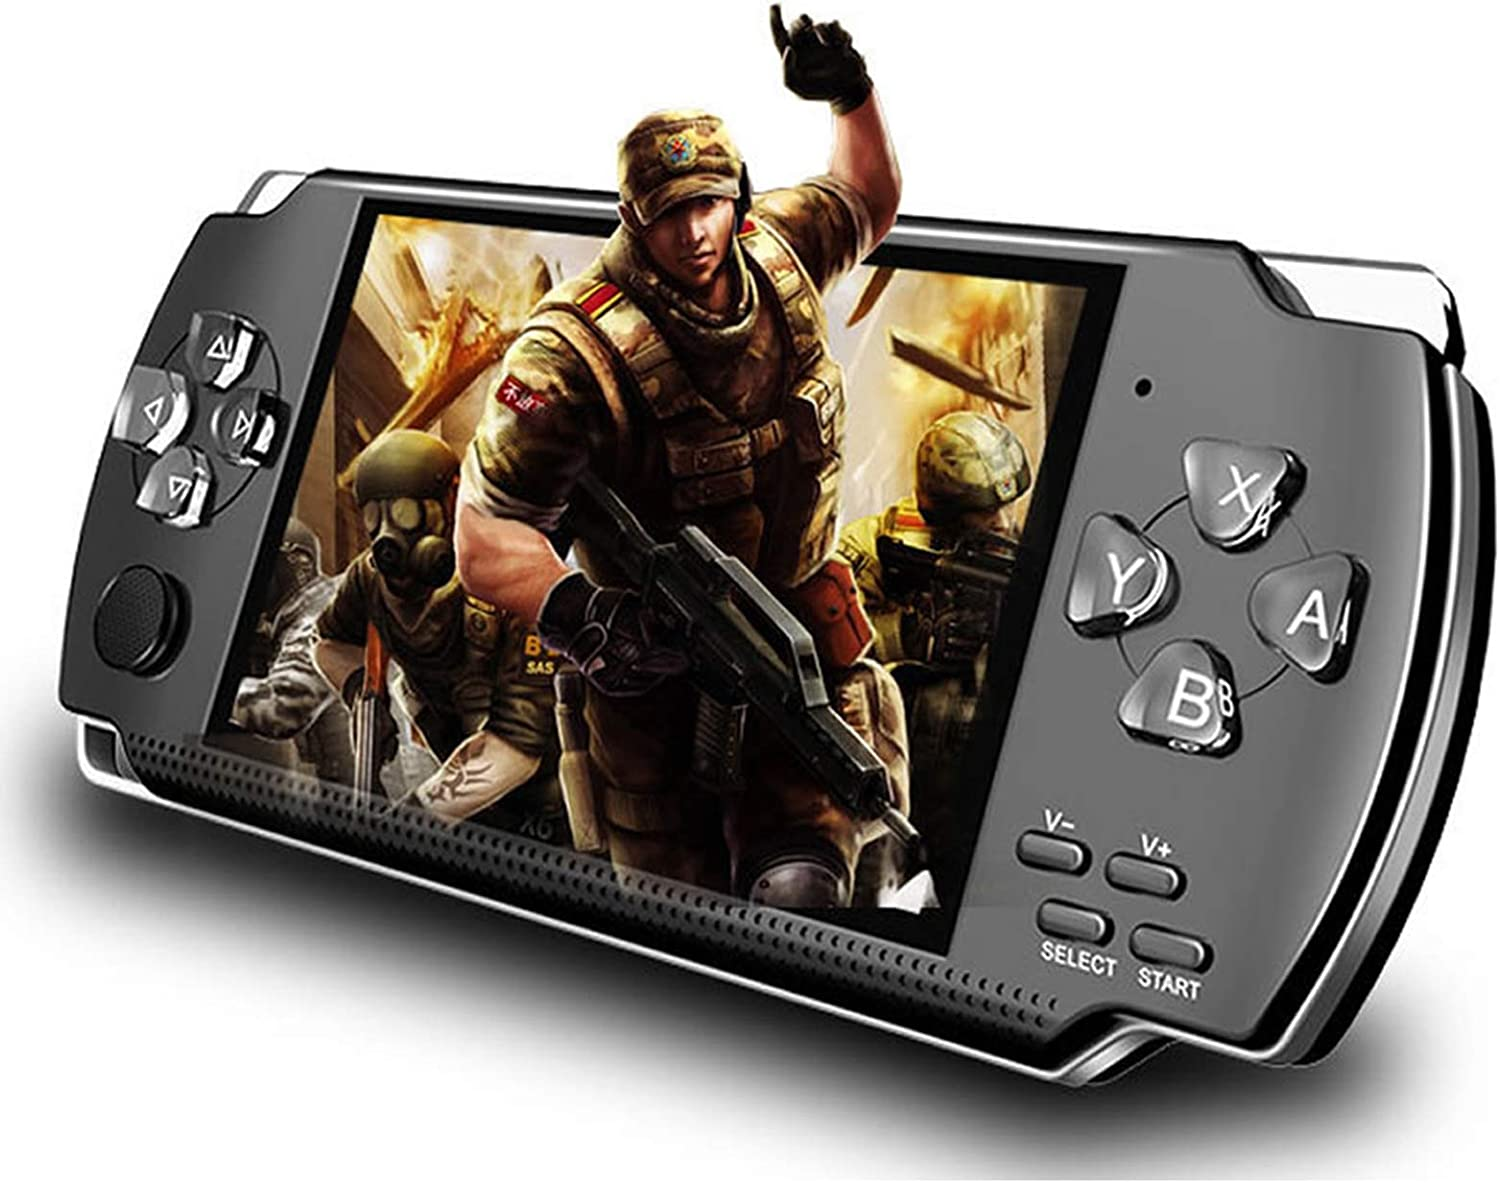 Amazon Com Lktina 8gb 4 3 1000 Lcd Screen Handheld Portable Game Console Media Player With Camera Built In 1200 Real Video Games For Gba Gbc Sfc Fc Smd Games Best Gift For Kids And Adults Black Medium Toys